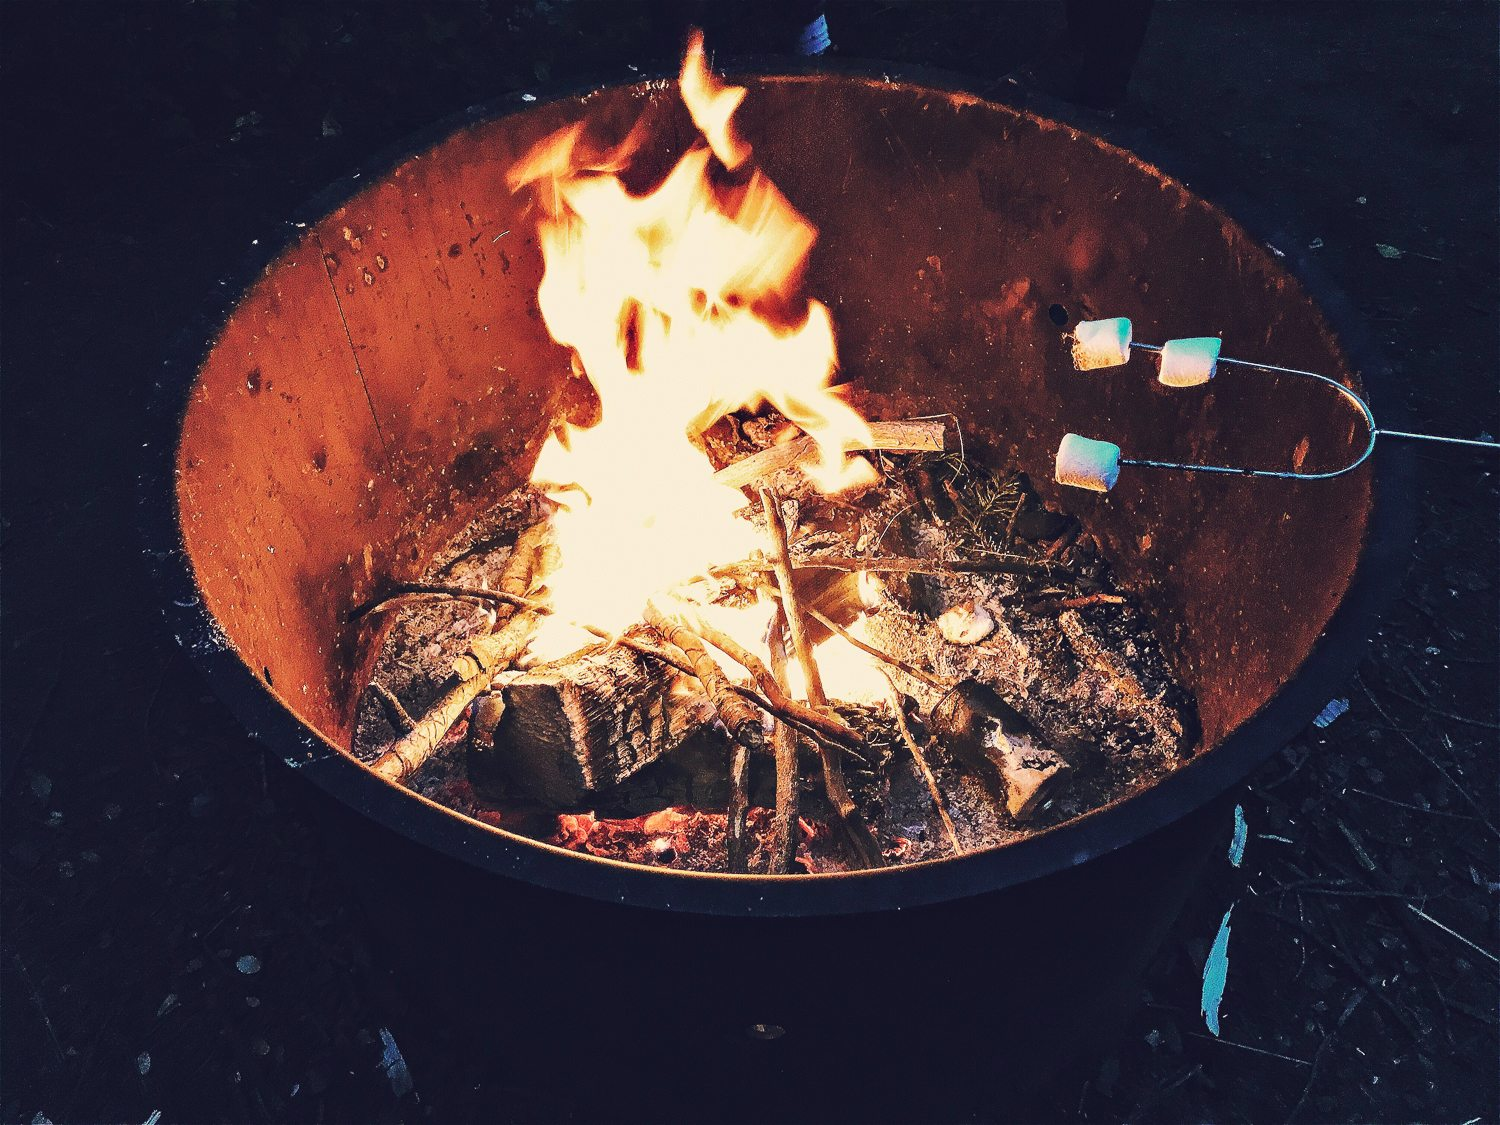 Cooking marshmallows on a firepit